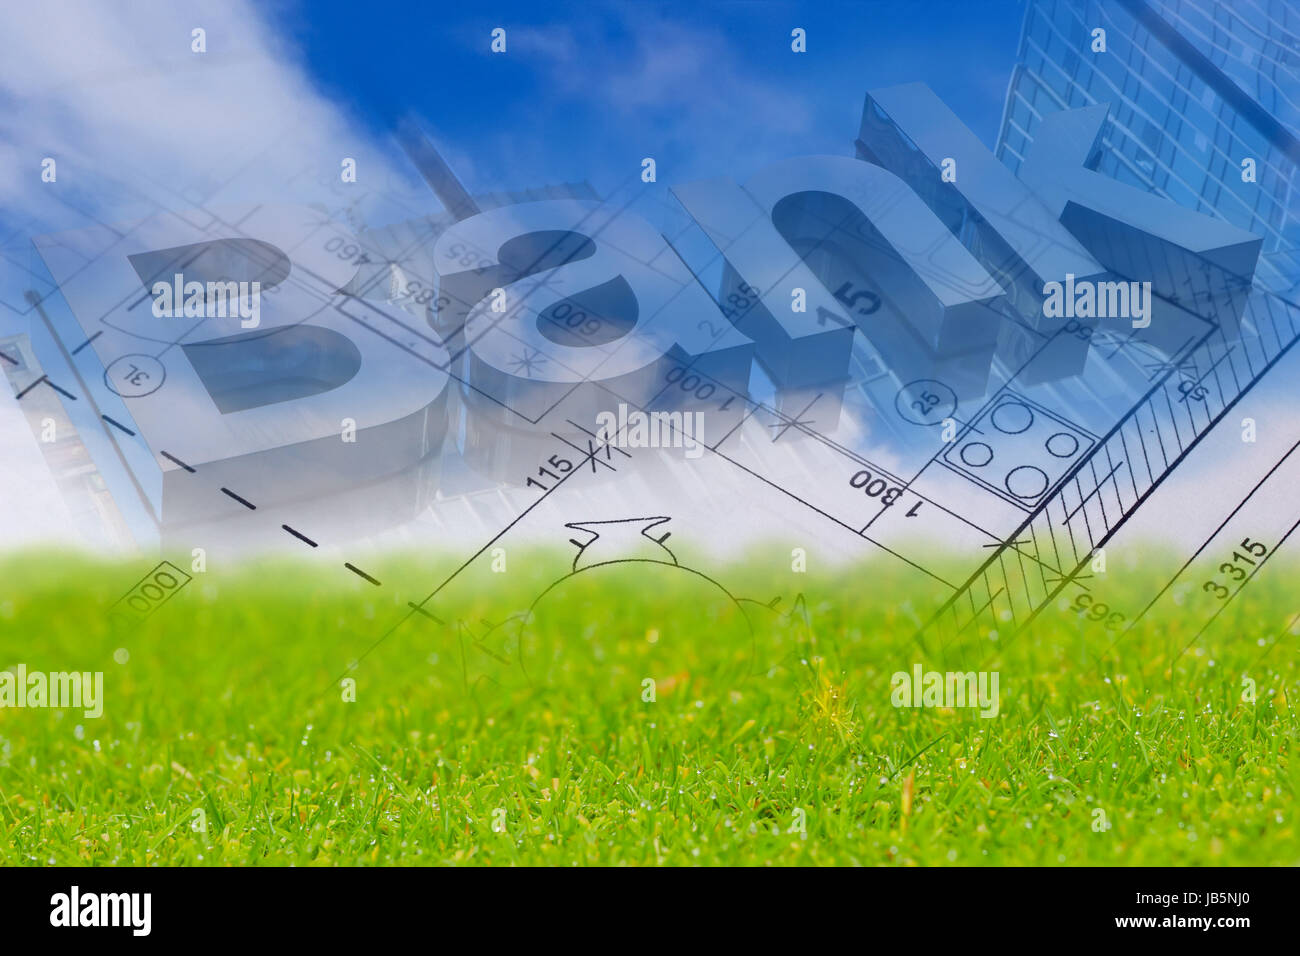 Background with blue sky, green land, blueprint of a house and bank sign - Stock Image